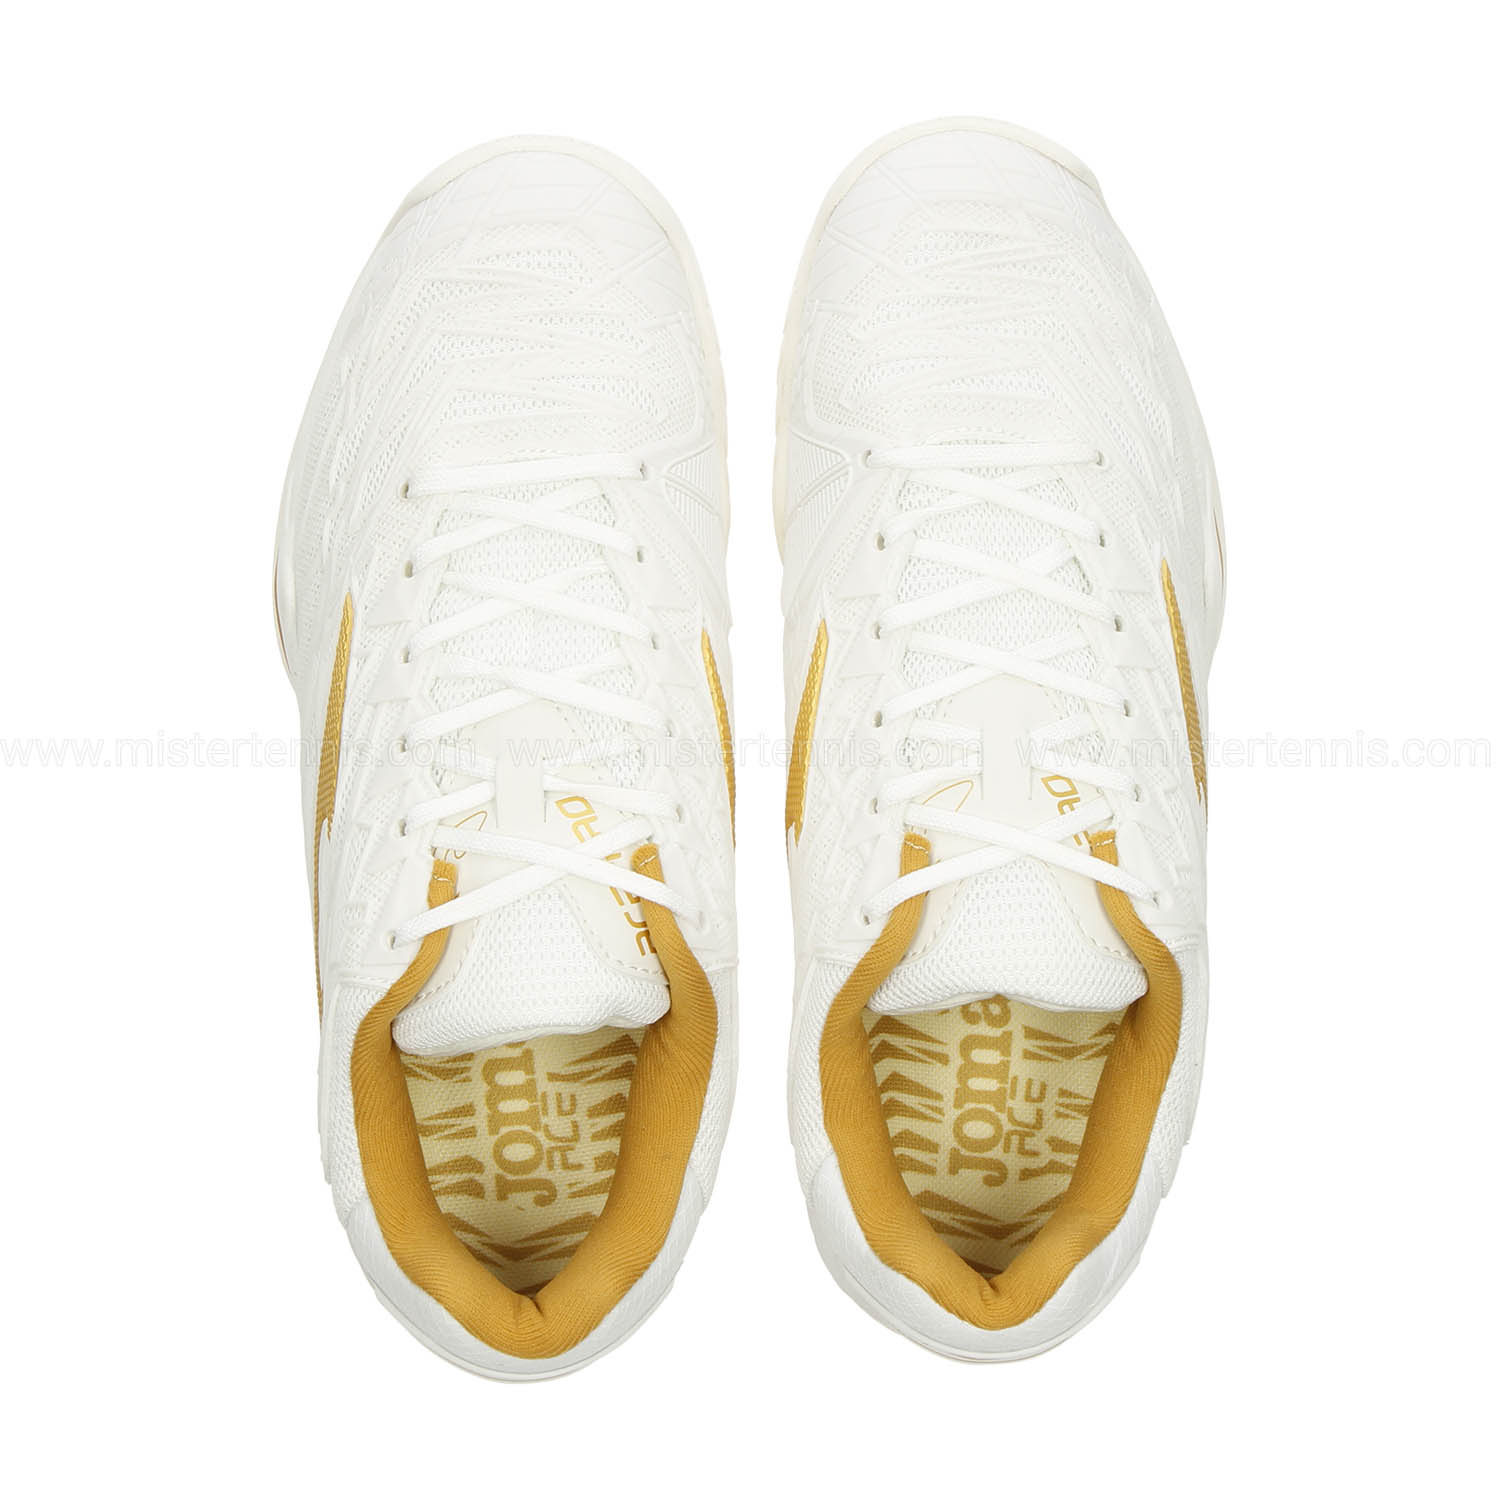 Joma Ace Pro Lady 2002 All Court - White/Gold